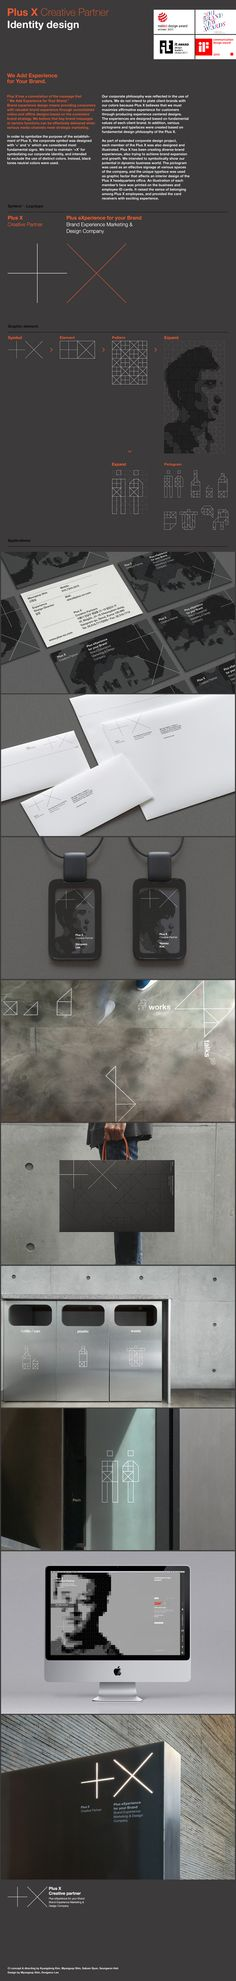 Plus X Creative Partner Identity Design by Plus X , via Behance